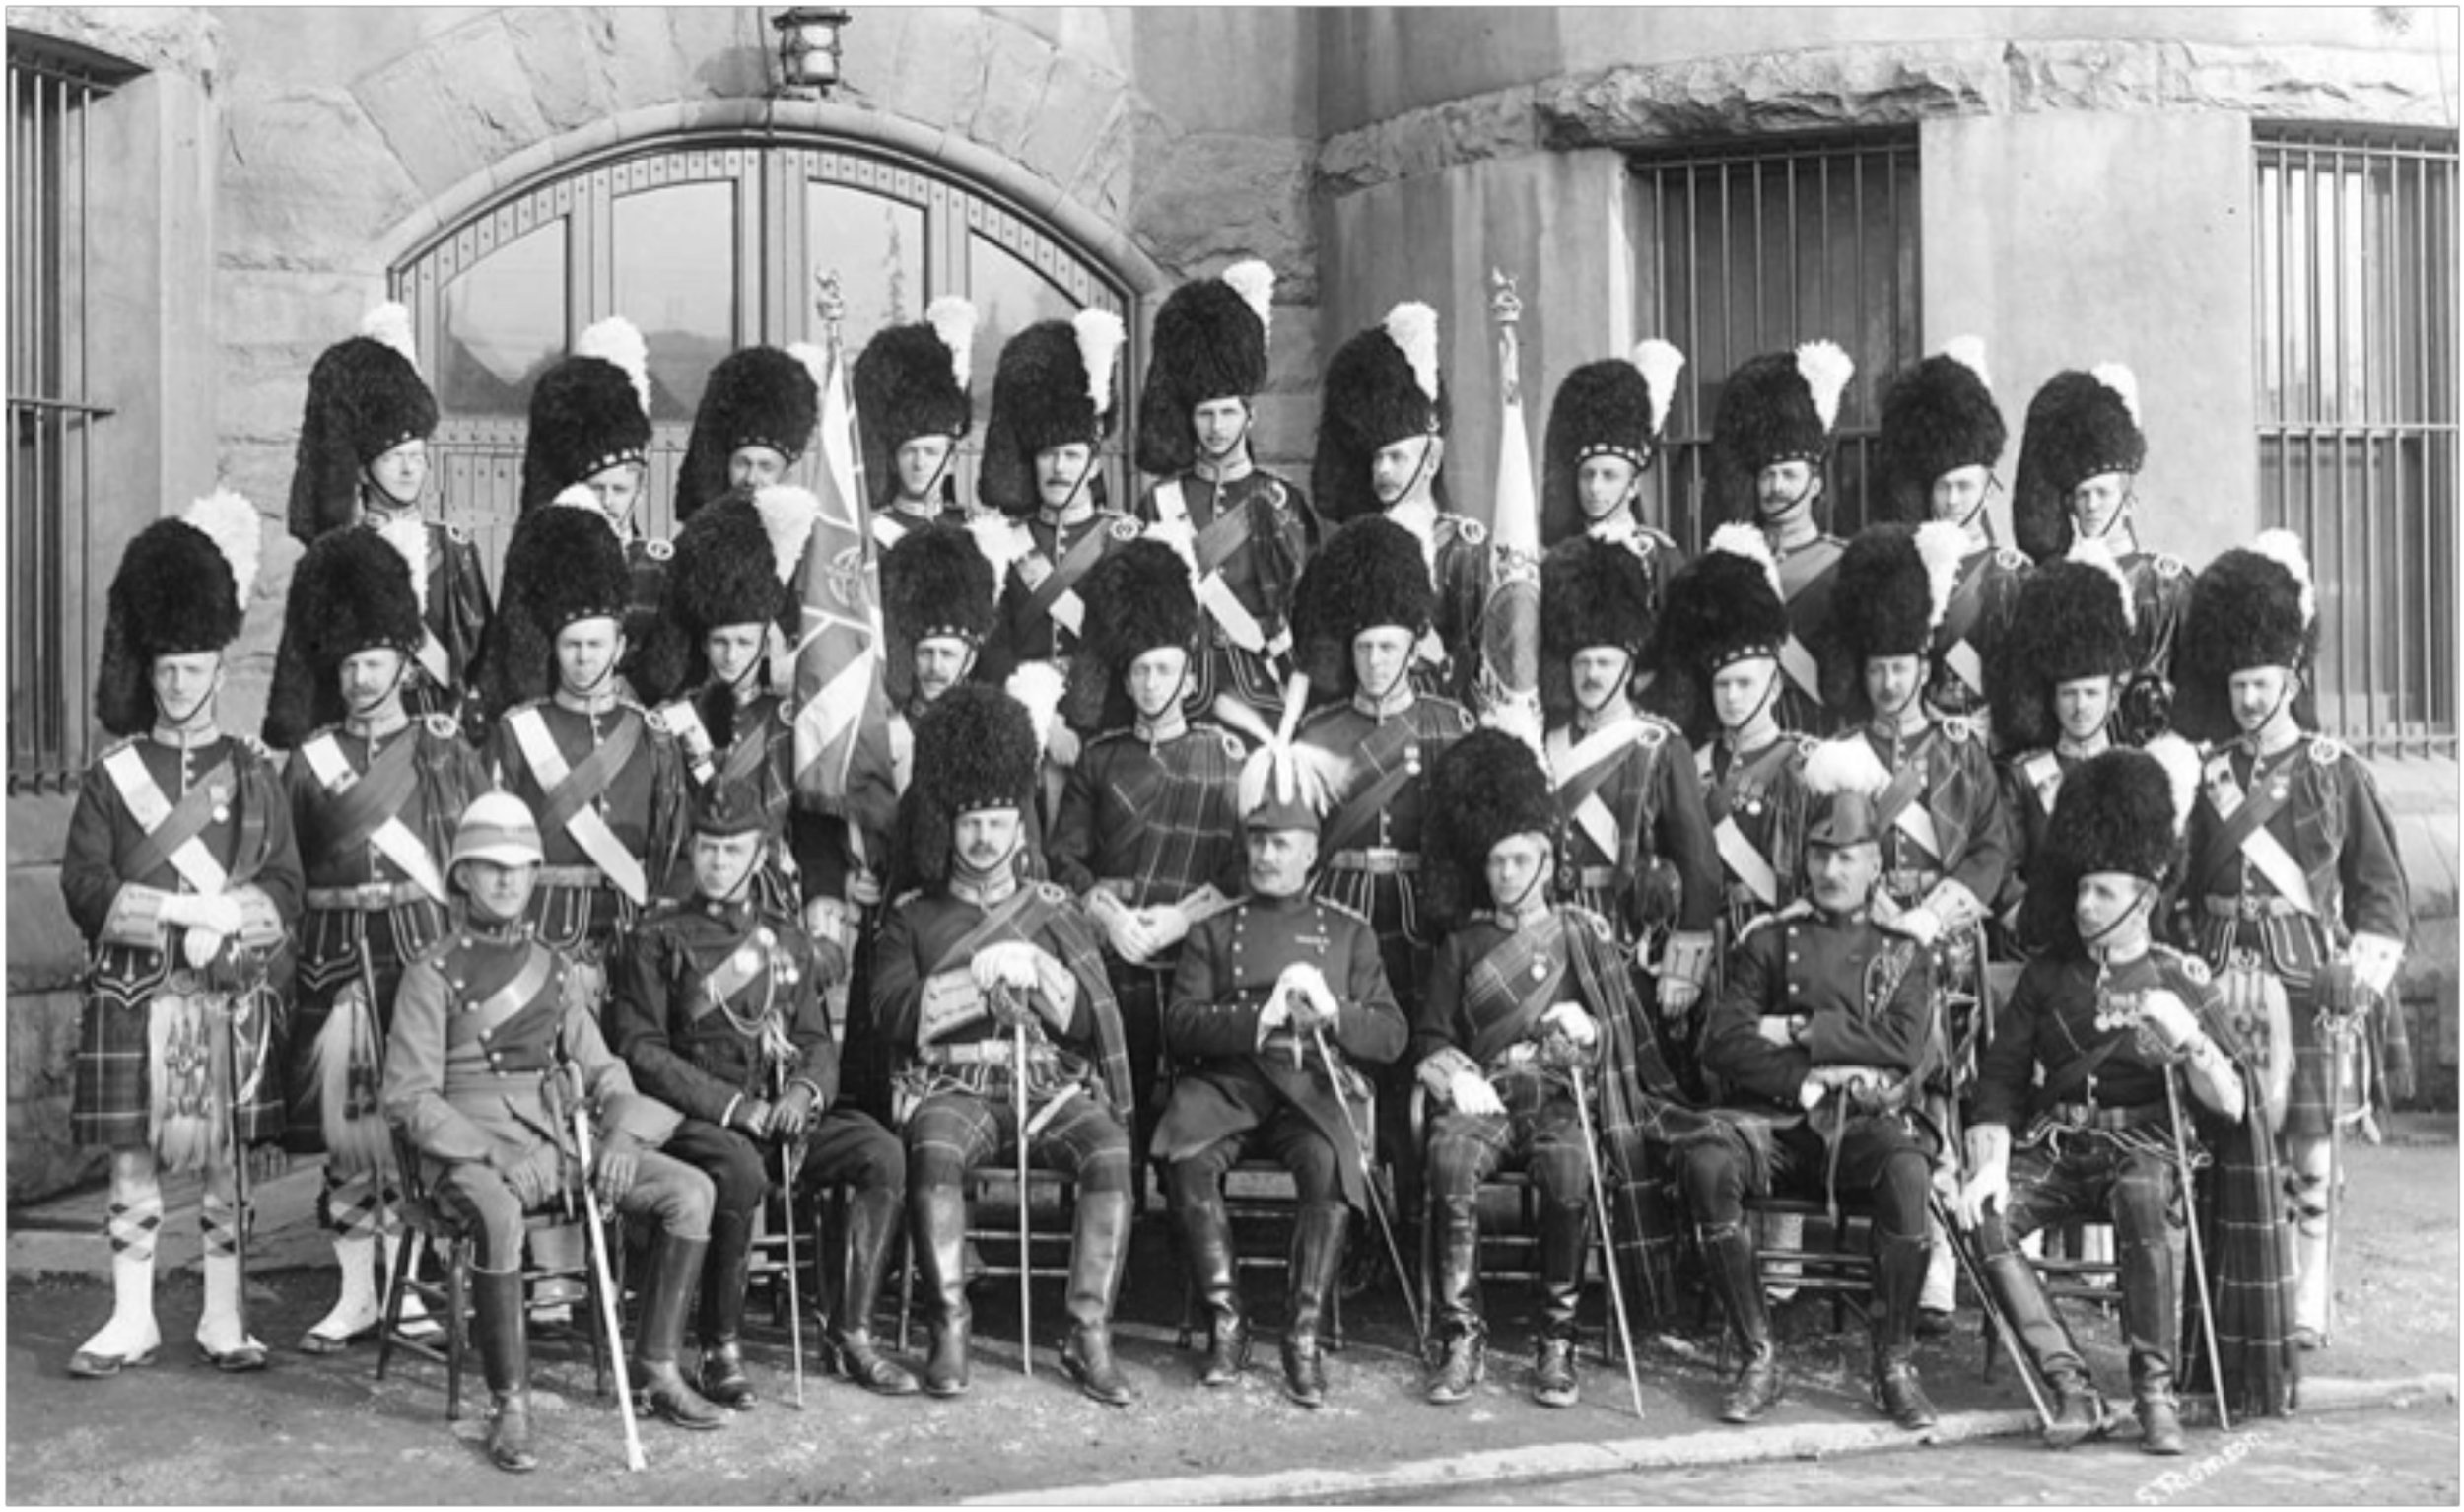 Officers of the 72nd Regiment 'Seaforth Highlanders of Canada' in 1913. Lieutenant Roderick O. Bell-Irving is standing in the back row, very left. City of Vancouver Archives, Item AM54-S4-: Mil P225.